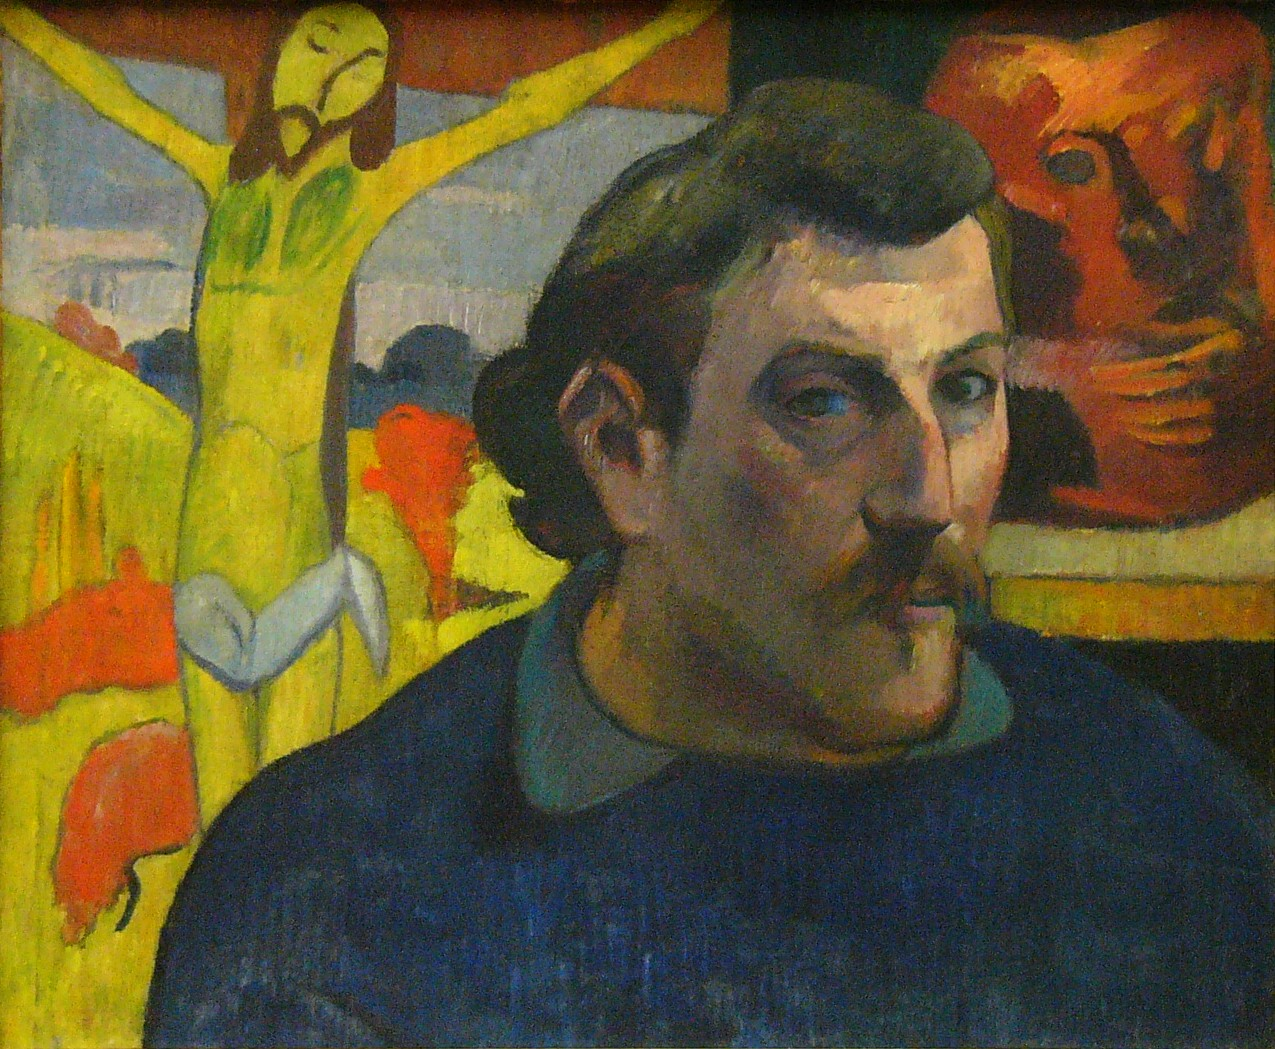 http://upload.wikimedia.org/wikipedia/commons/f/fd/Gauguin_portrait_1889.JPG